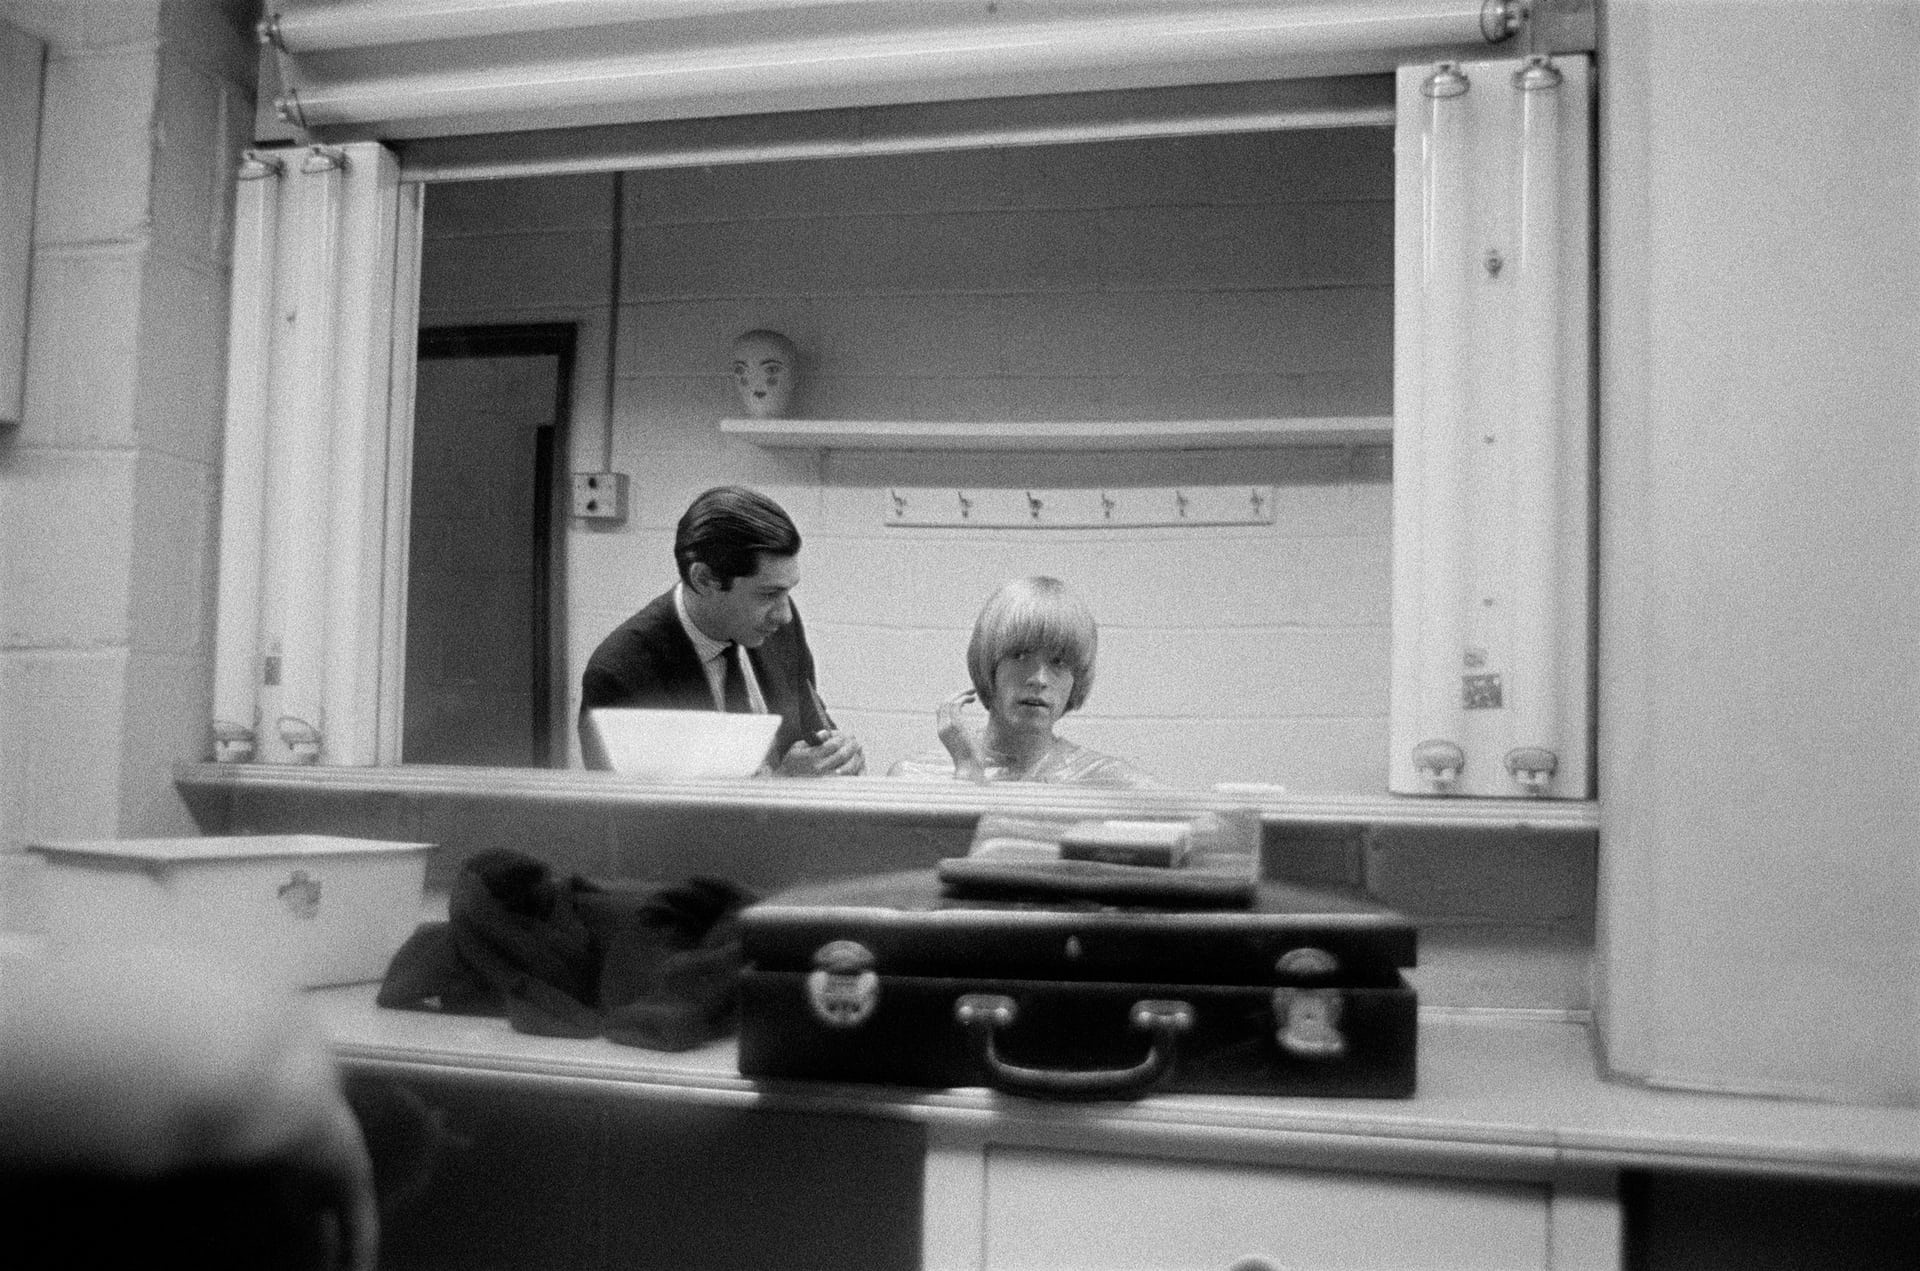 Brian gets his haircut at NBC (October 1965) 'He was very vain about his hair and is pictured here having it trimmed by the NBC studio hairdresser when the band appeared on the Hullabaloo TV show in New York'